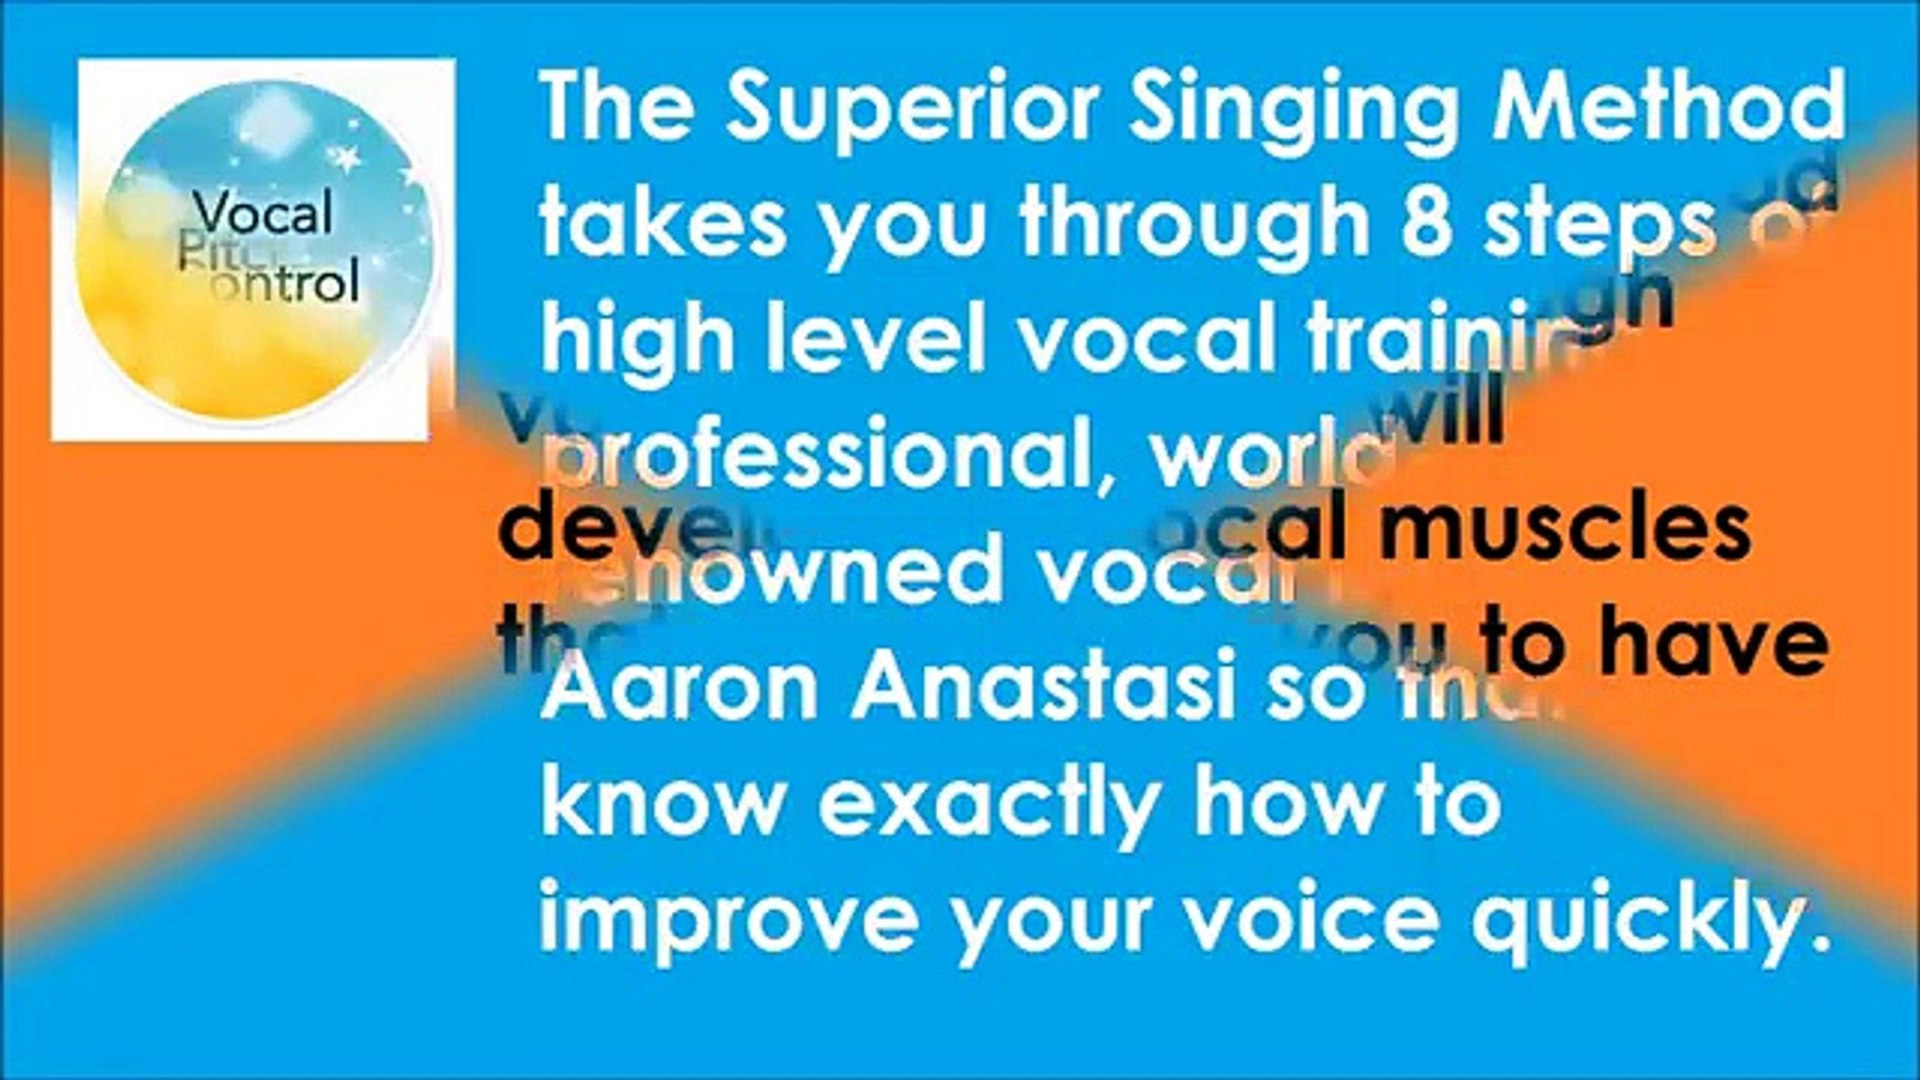 Does The Superior Singing Method Work? | How Does The Superior Singing Method Work?